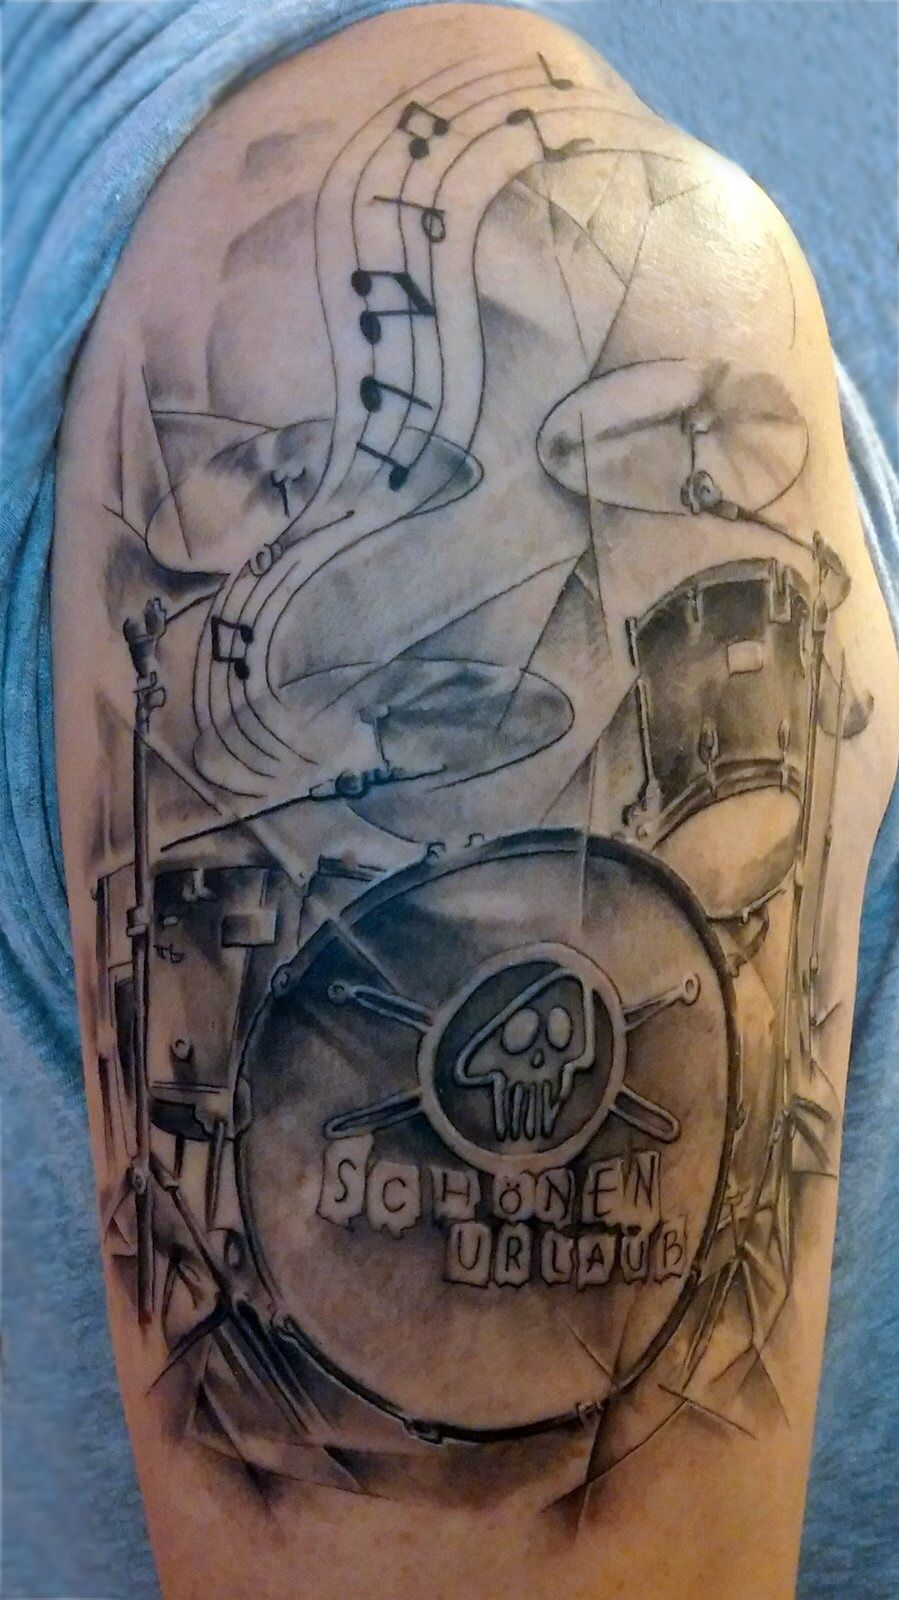 A Mapex Orion Drum Tattoo